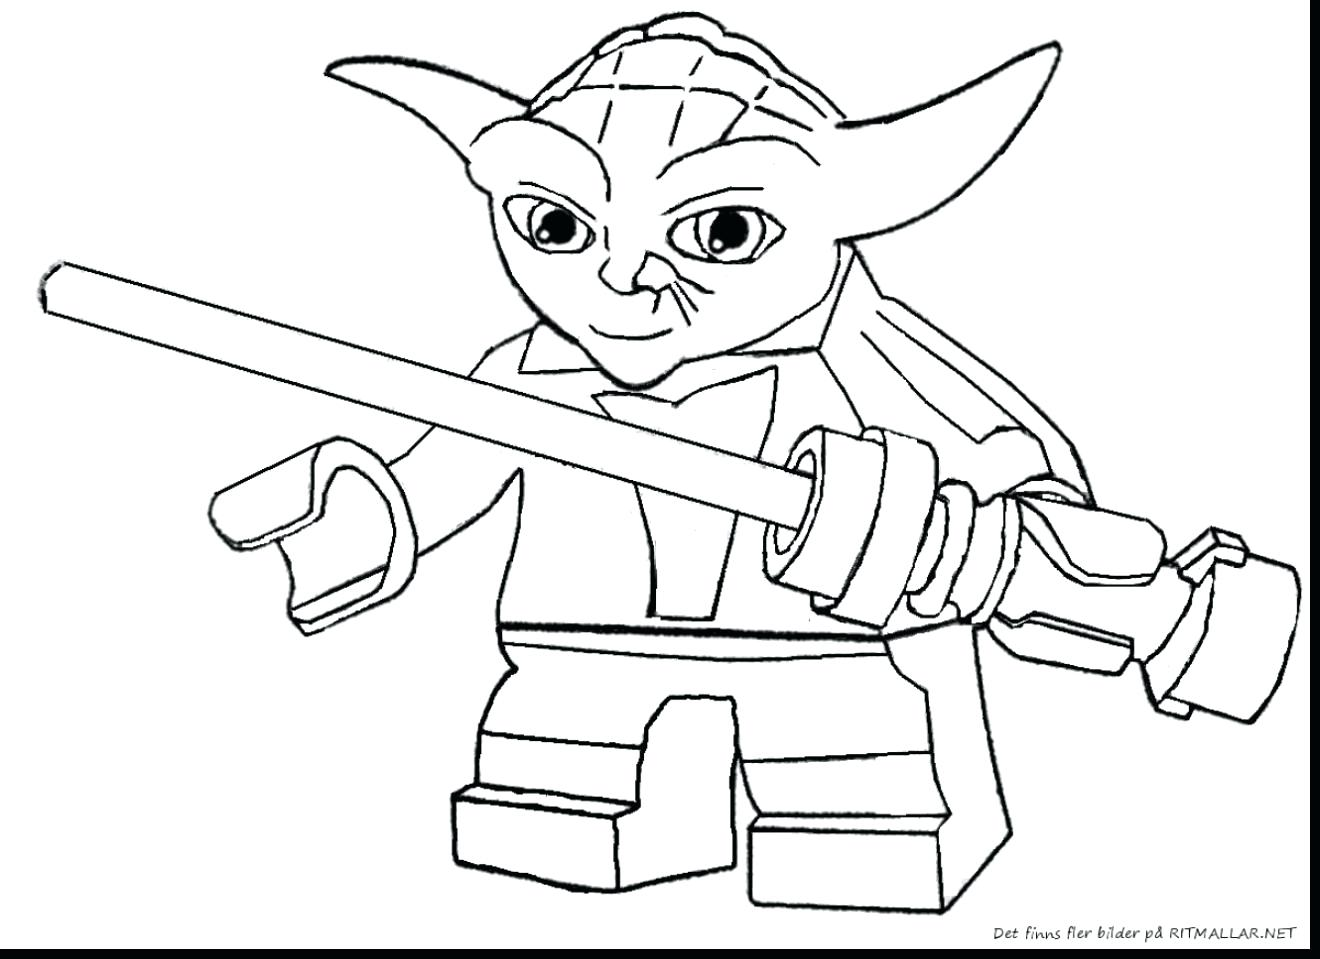 1320x959 Coloring Star Wars Angry Birds Coloring Pages